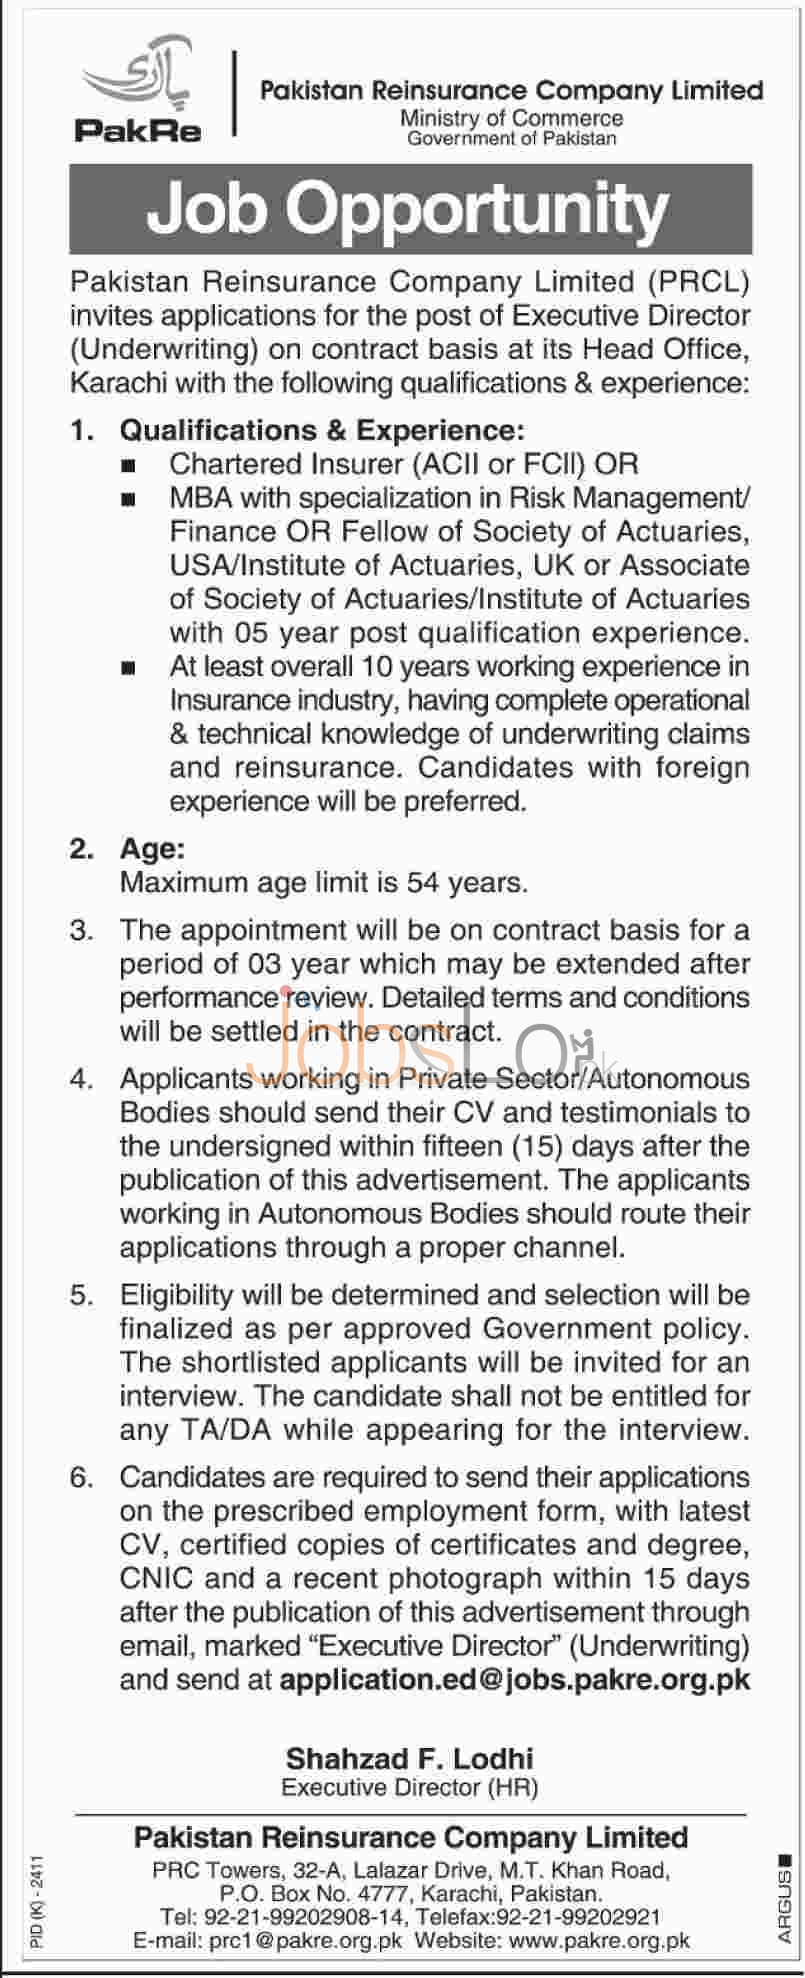 Job Vaccancy in Pakistan Reinsurance Company Limited for Executive Director 2016